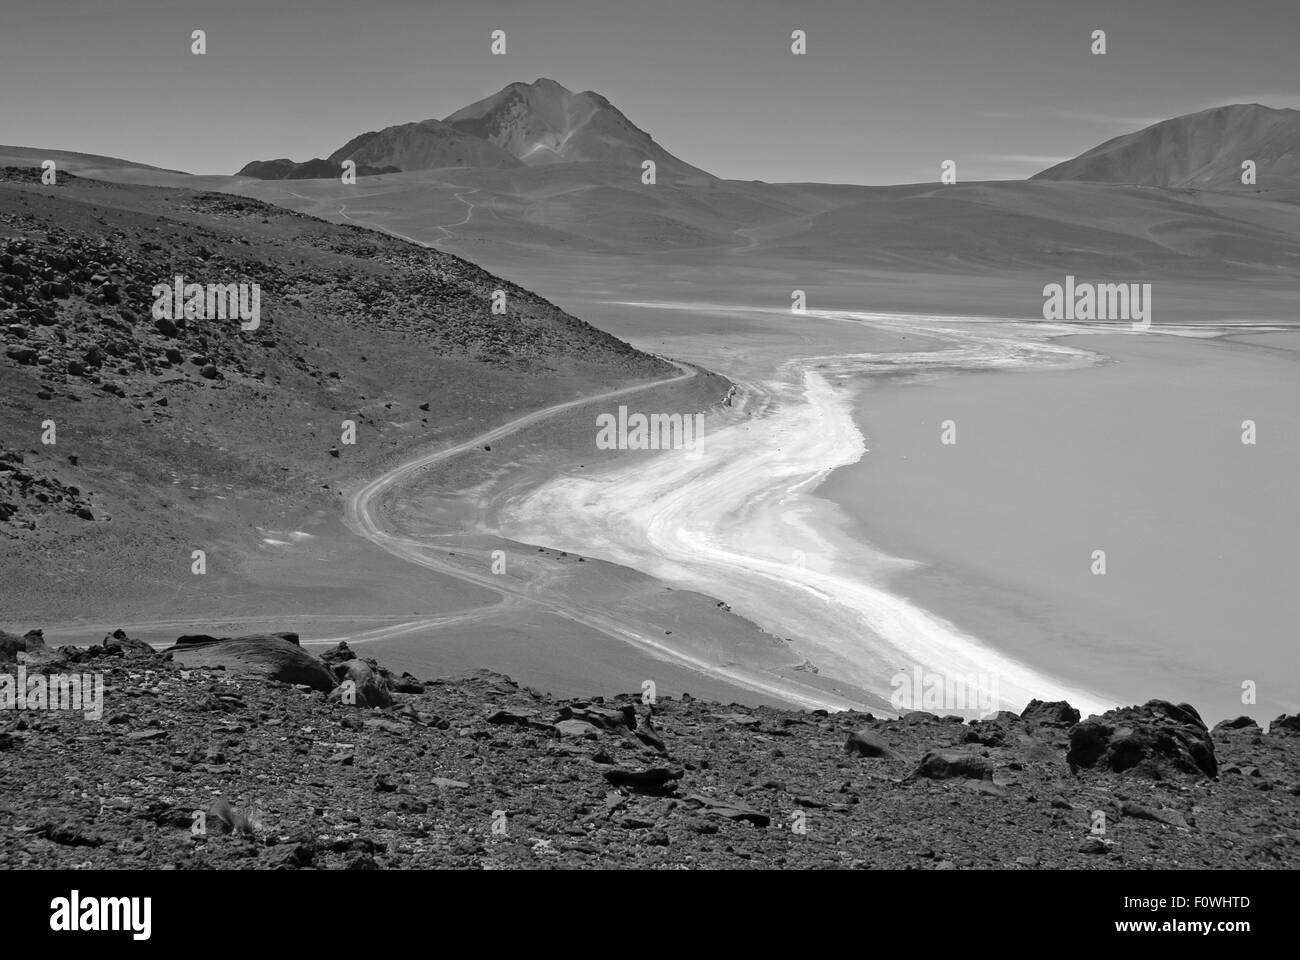 Volcanic landscape and high altitude desert in the Bolivian Altiplano - Stock Image